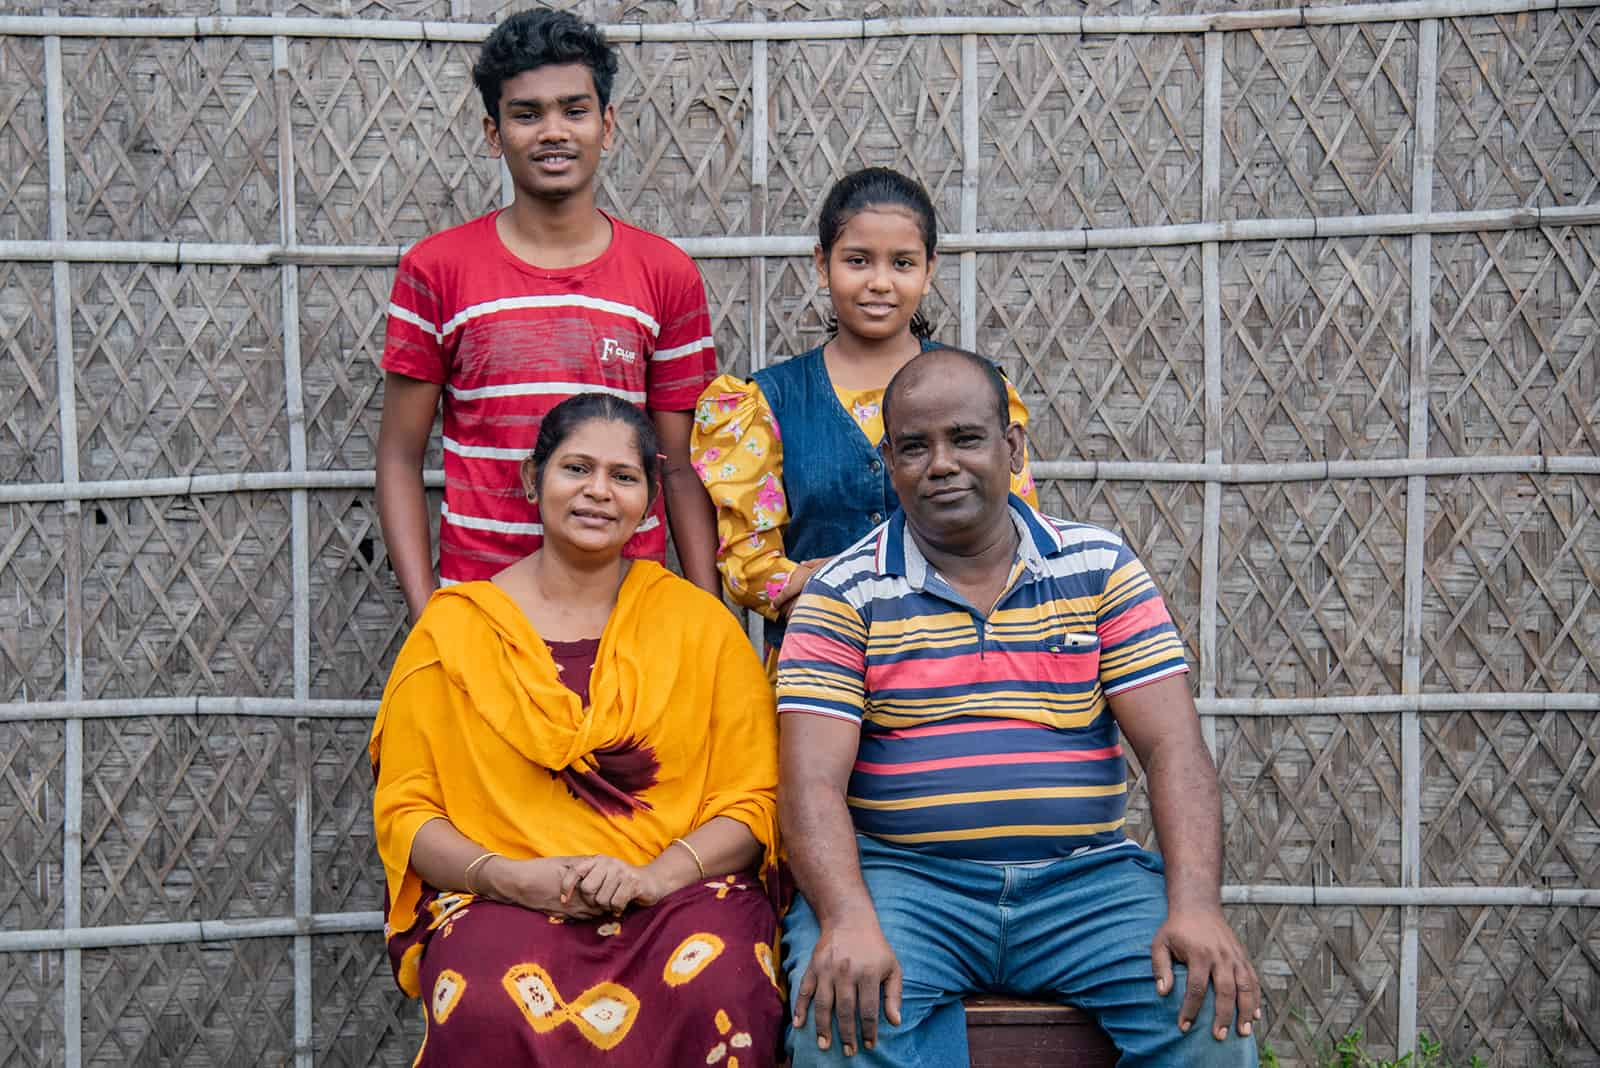 Sanjoy, in a red and white shirt, is with his family posing for a photo. His mother, in yellow, is sitting next to his father, Subhas. Sanjoy's sister is standing next to him. They are in front of a bamboo wall.